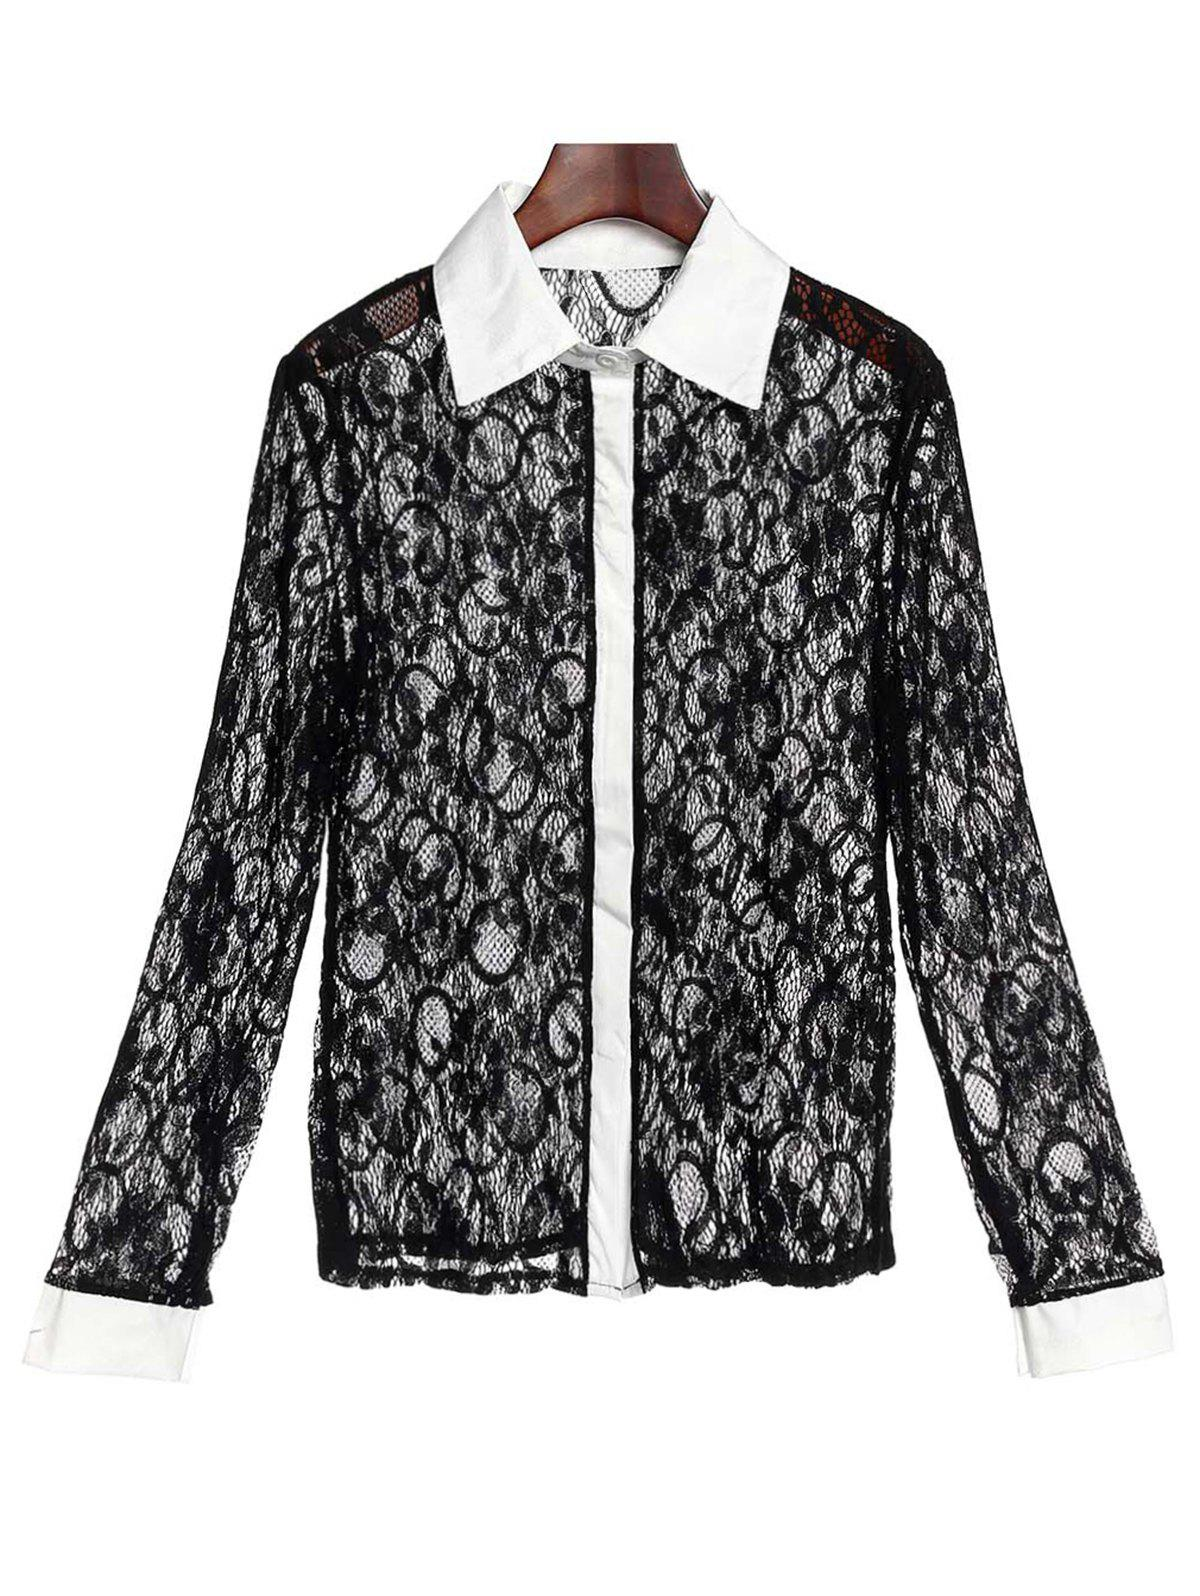 Hot Stylish Turn-Down Collar Long Sleeve Color Block Slimming Lace Women's Blouse